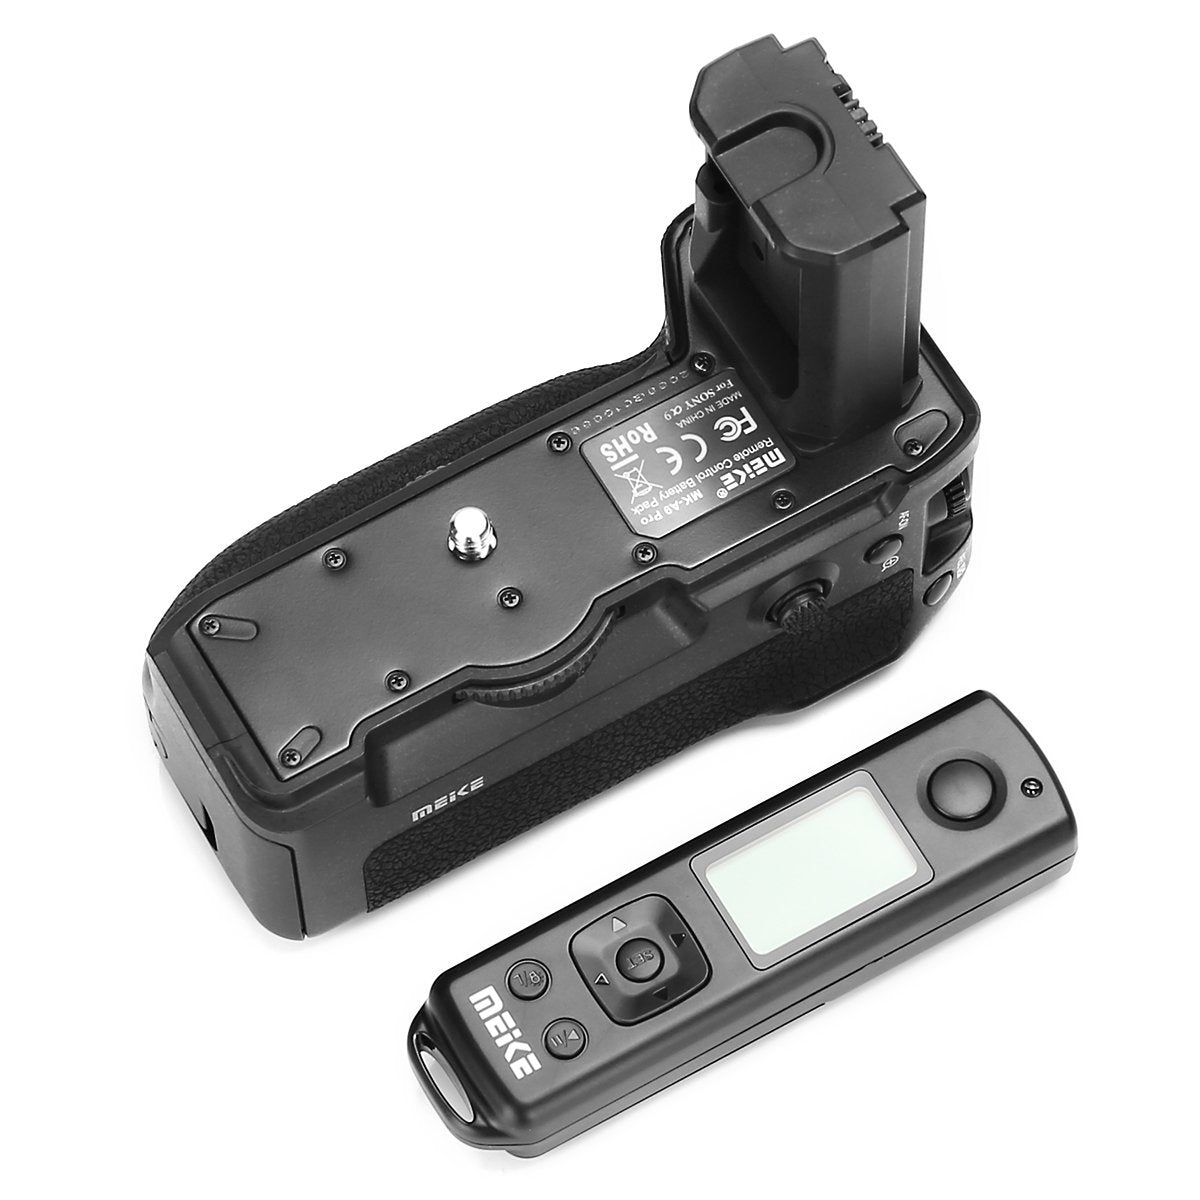 Meike MK-XT2 PRO Remote Battery Grip built-in 2.4GHZ FSK Vertical Battery pack Work For Fujifilm XT2 Camera.